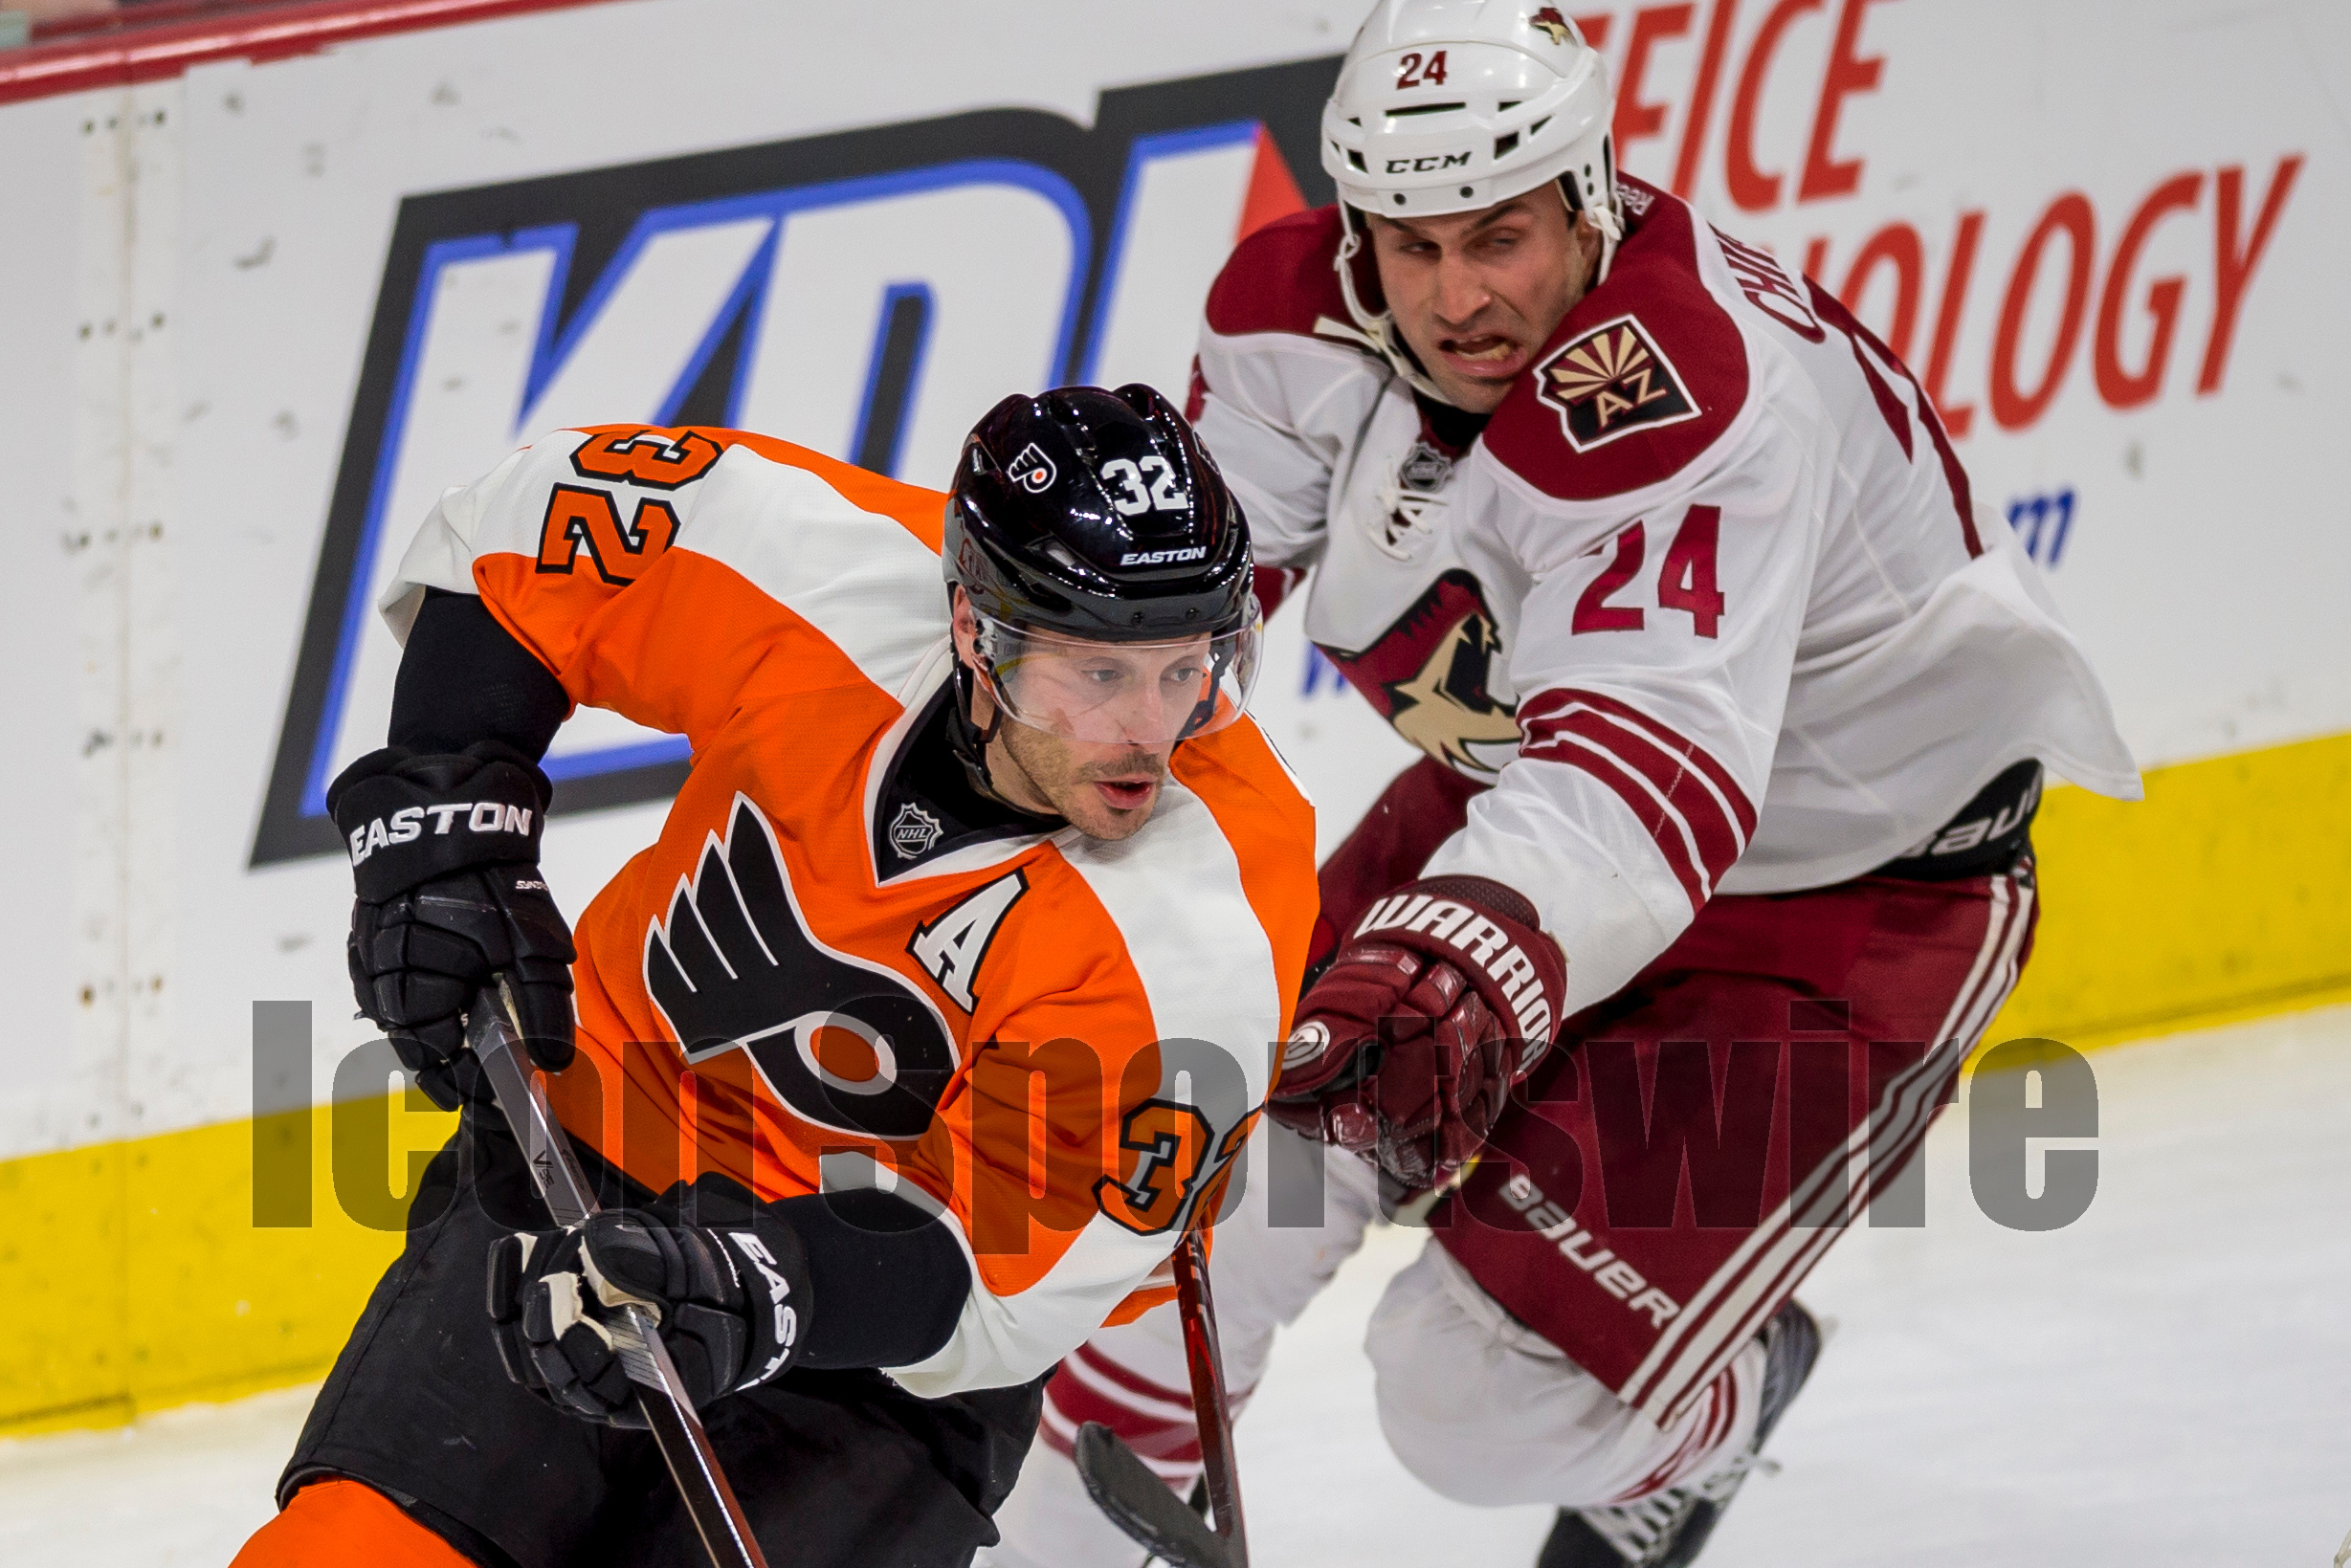 27 Jan 2015: Arizona Coyotes center Kyle Chipchura (24) chases Philadelphia Flyers defenseman Mark Streit (32) around the back of the net during the NHL game between the Arizona Coyotes and the Philadelphia Flyers played at the Wells Fargo Center in Philadelphia, PA